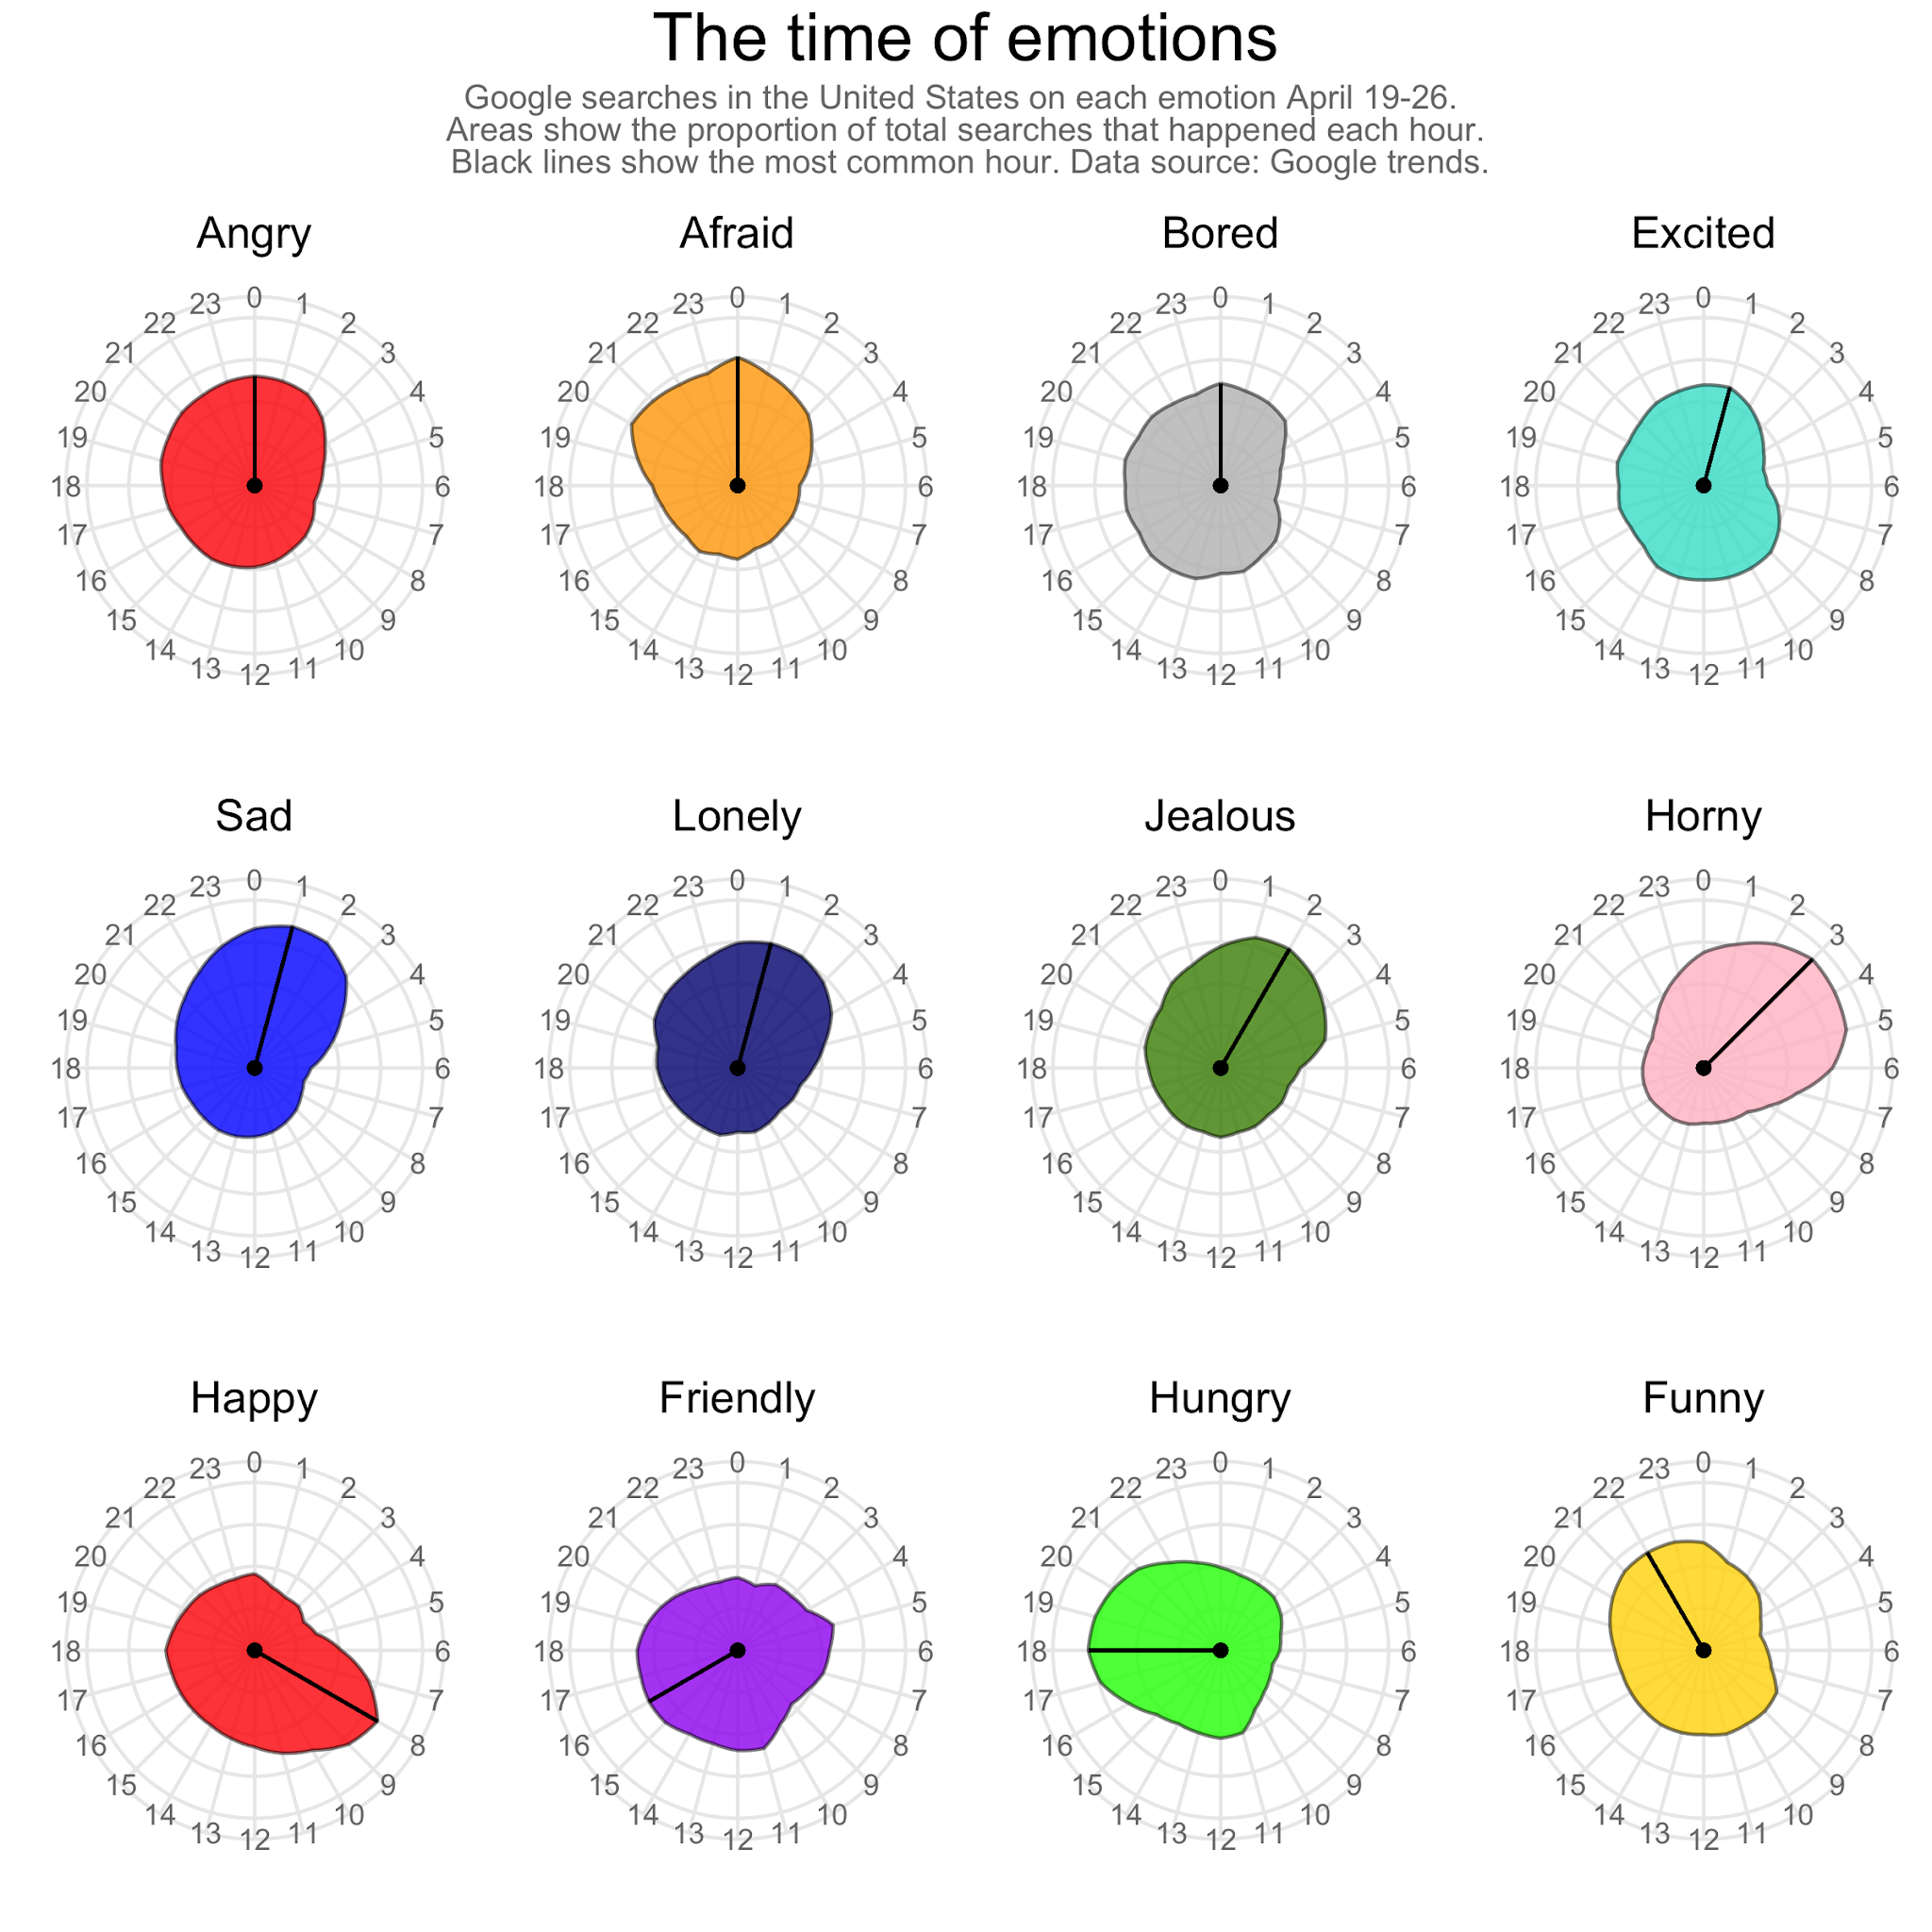 Emotions during each hour